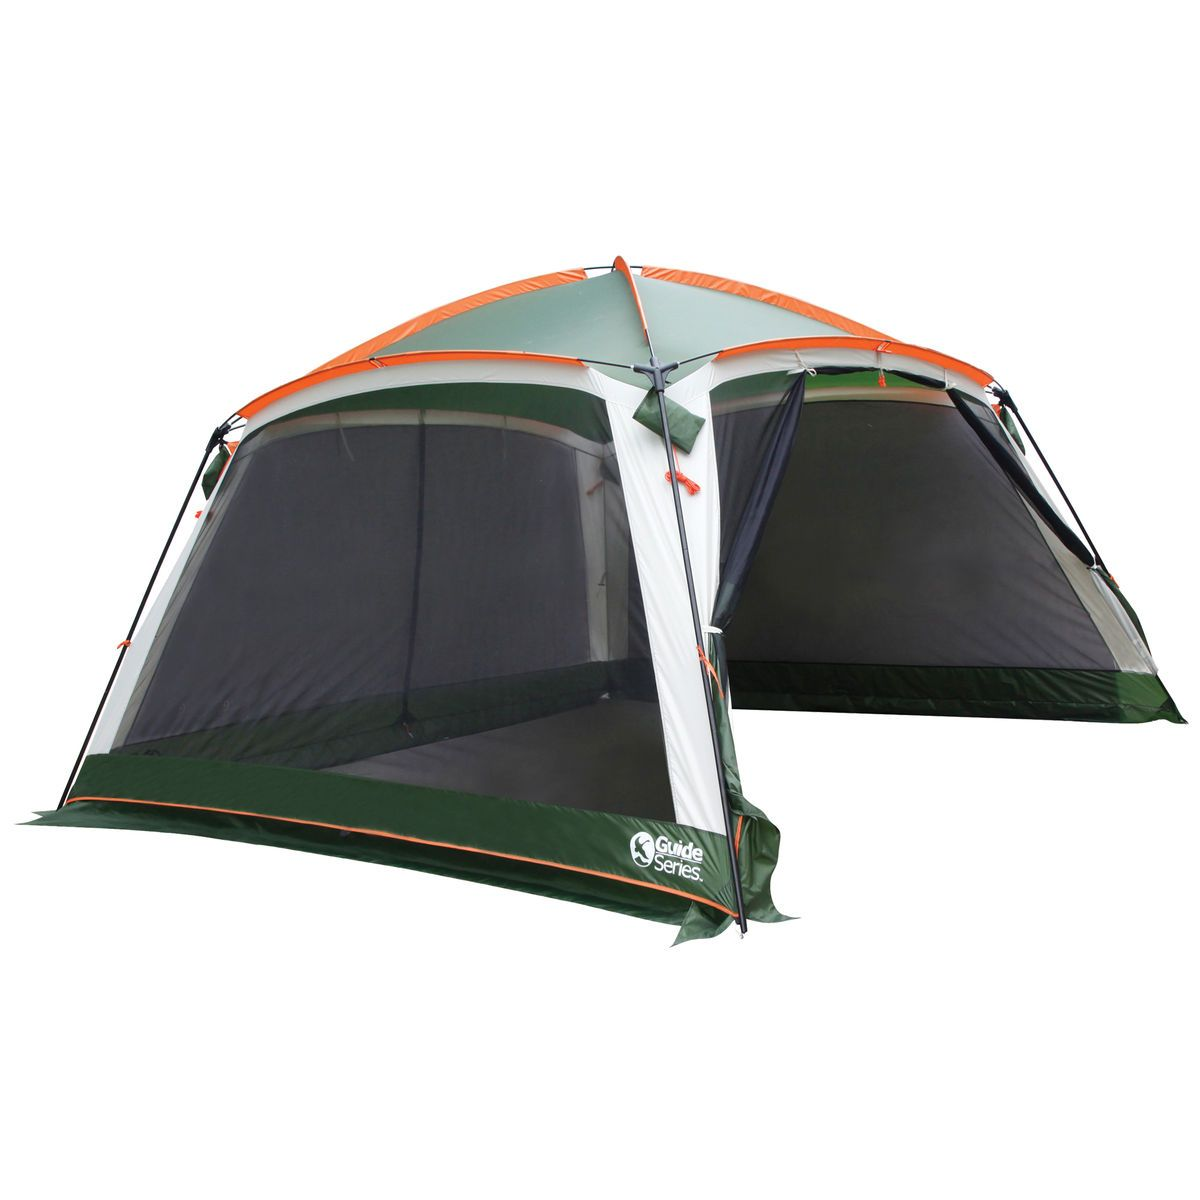 Gander mountain vista x screen house off road u camping gear